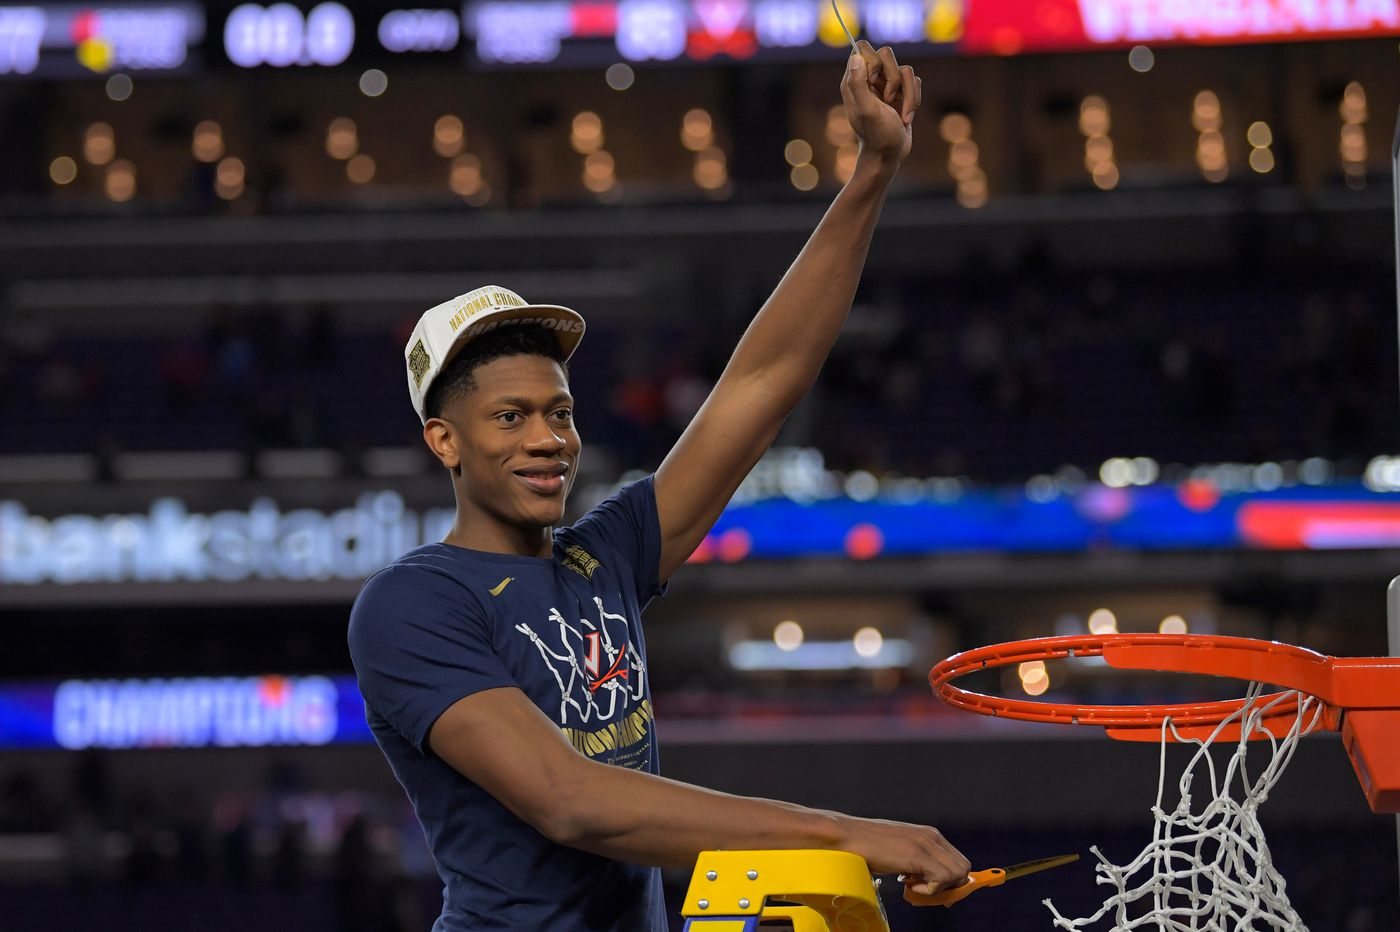 De'Andre Hunter realizes his national championship dream at Virginia, down to the last second